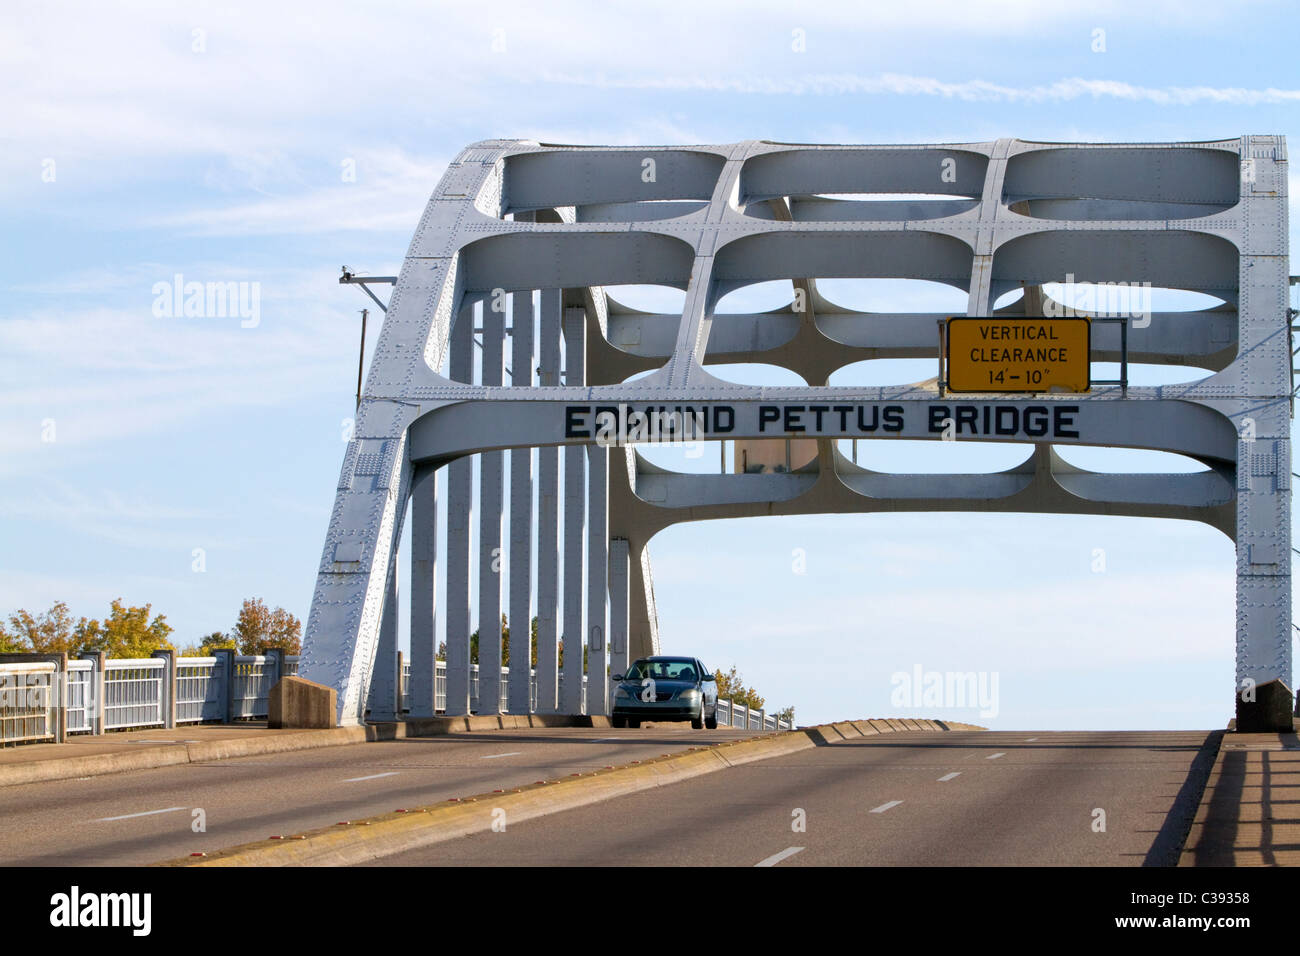 Edmund Pettus Bridge carries U.S. Highway 80 across the Alabama River in Selma, Alabama, USA. - Stock Image